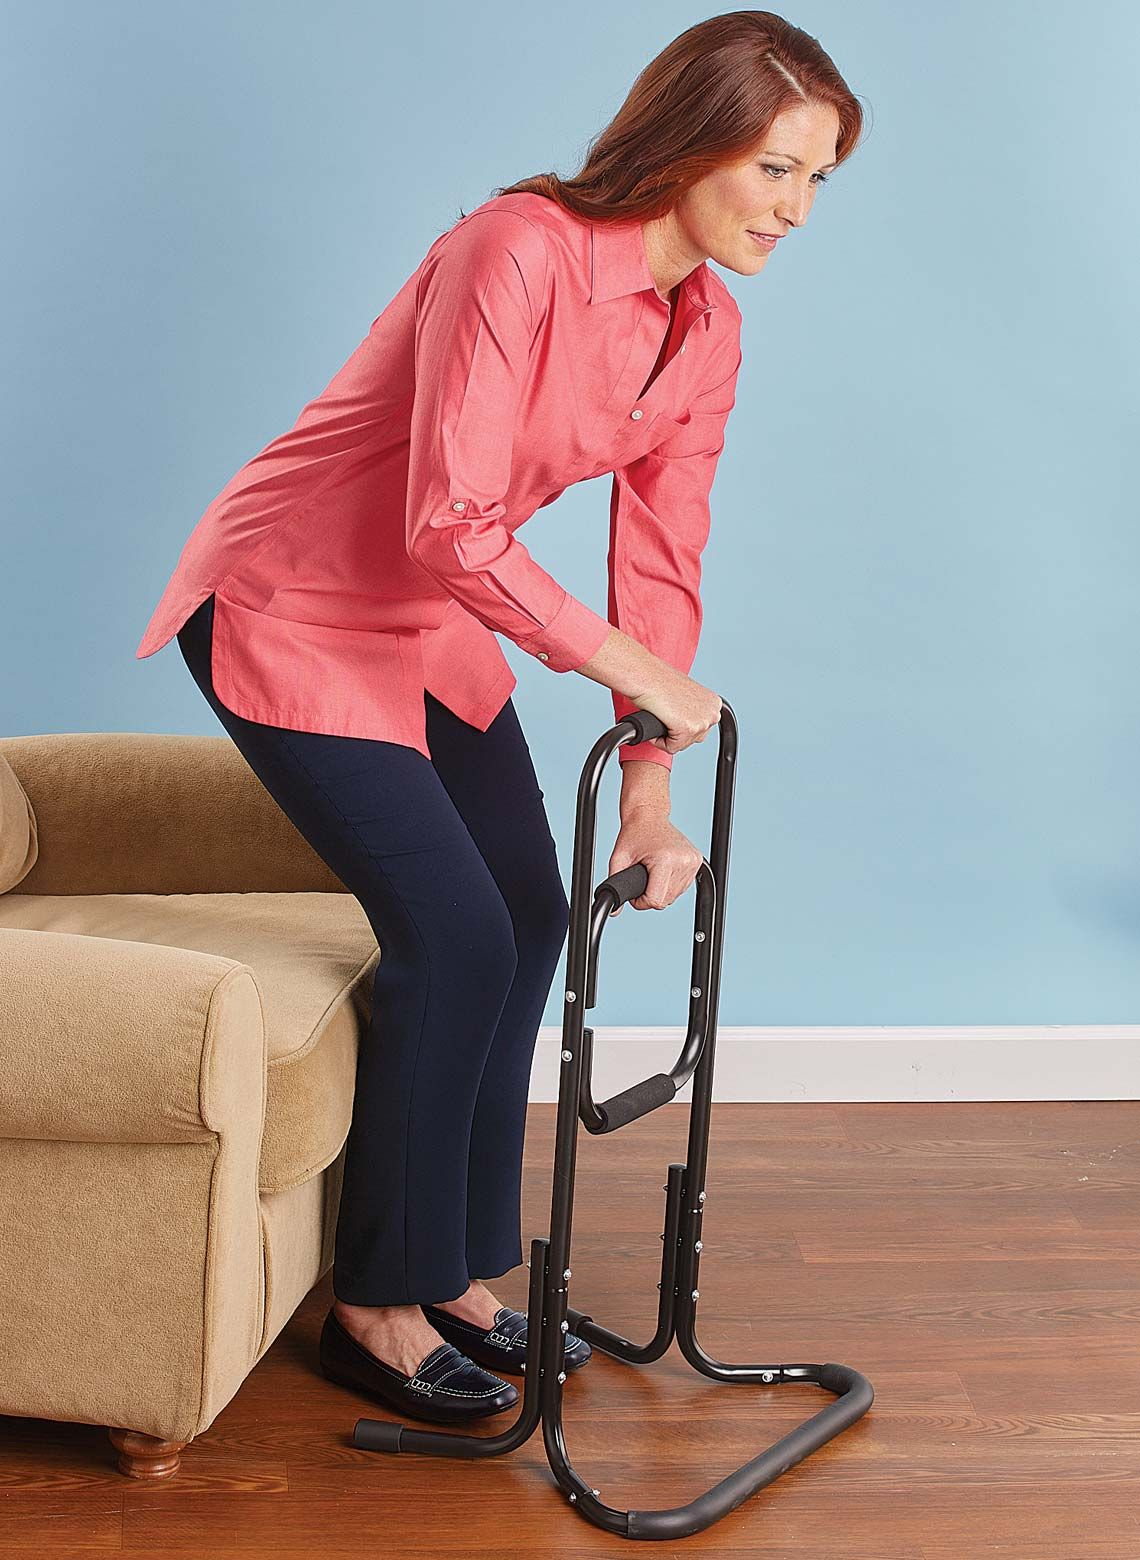 Improve everyday mobility with this sturdy ladderstyle